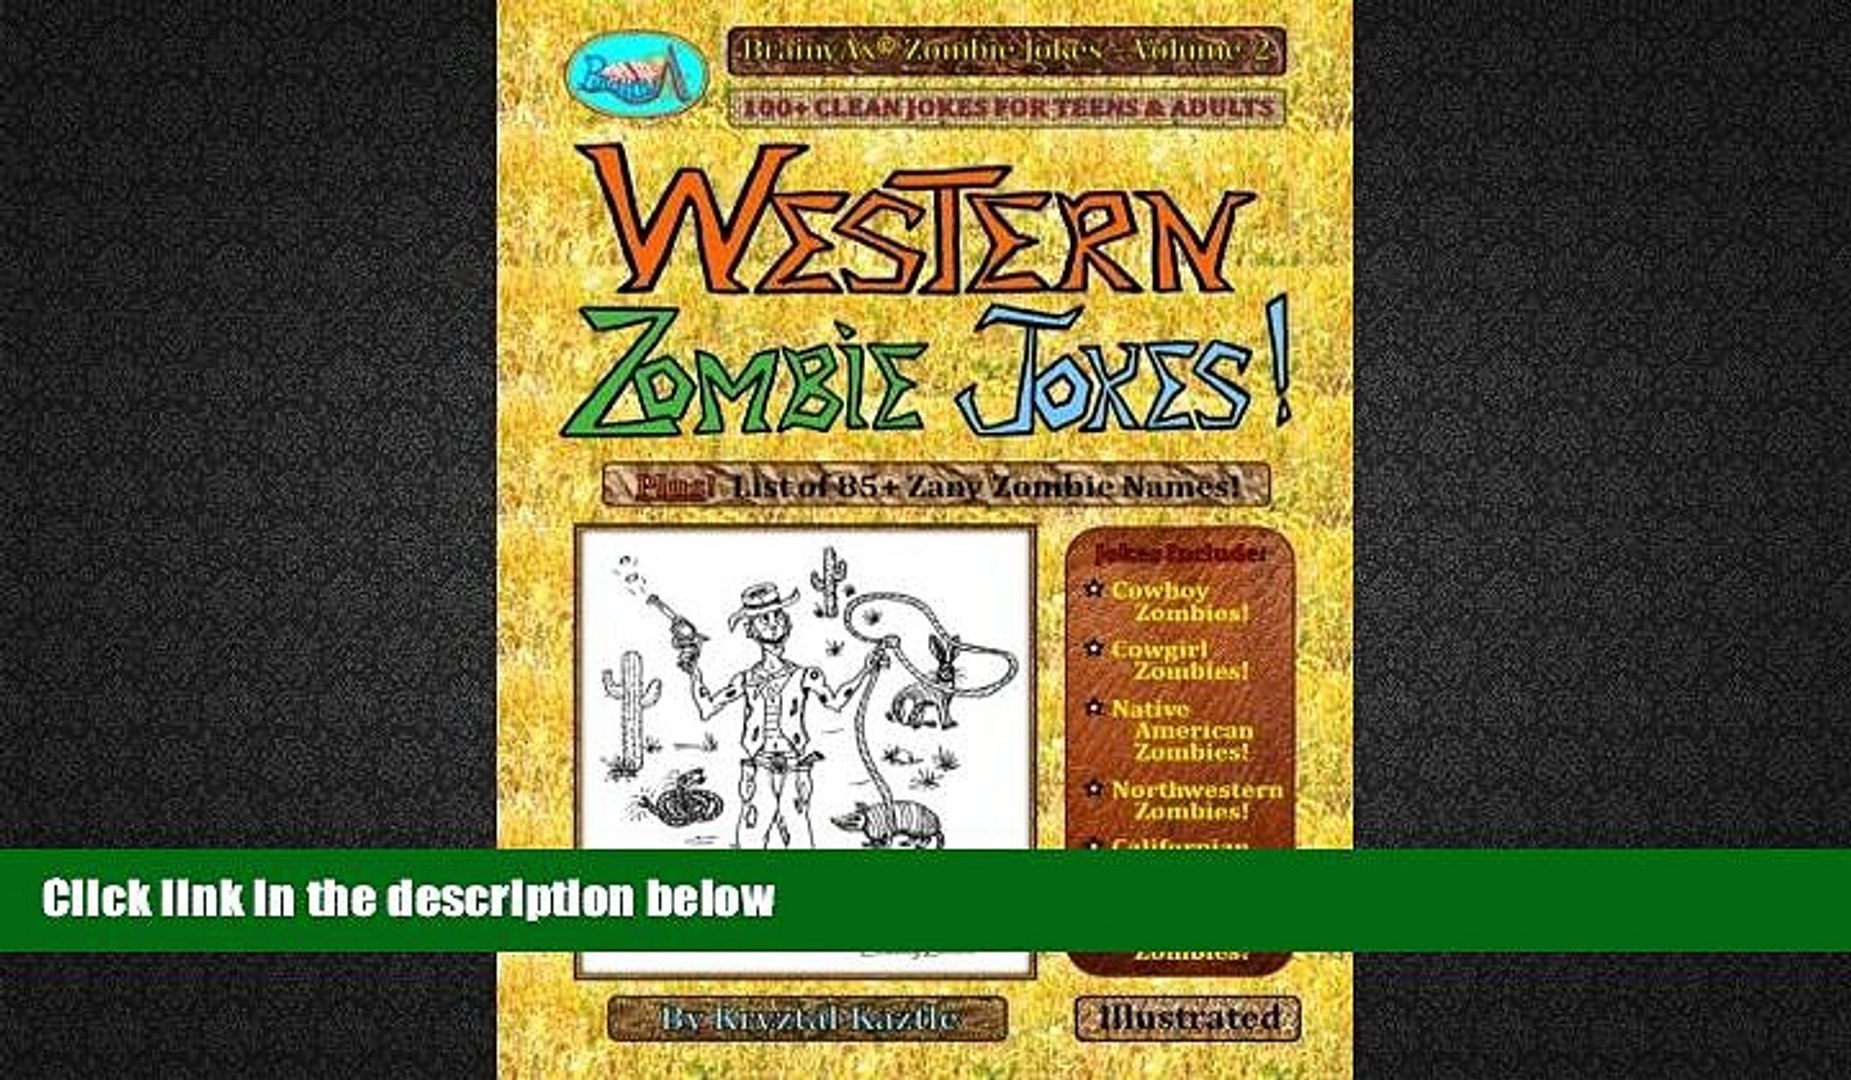 Download [PDF]  Western Zombie Jokes!: 100+ Clean Jokes for Teens and Adults (BrainyAx Zombie